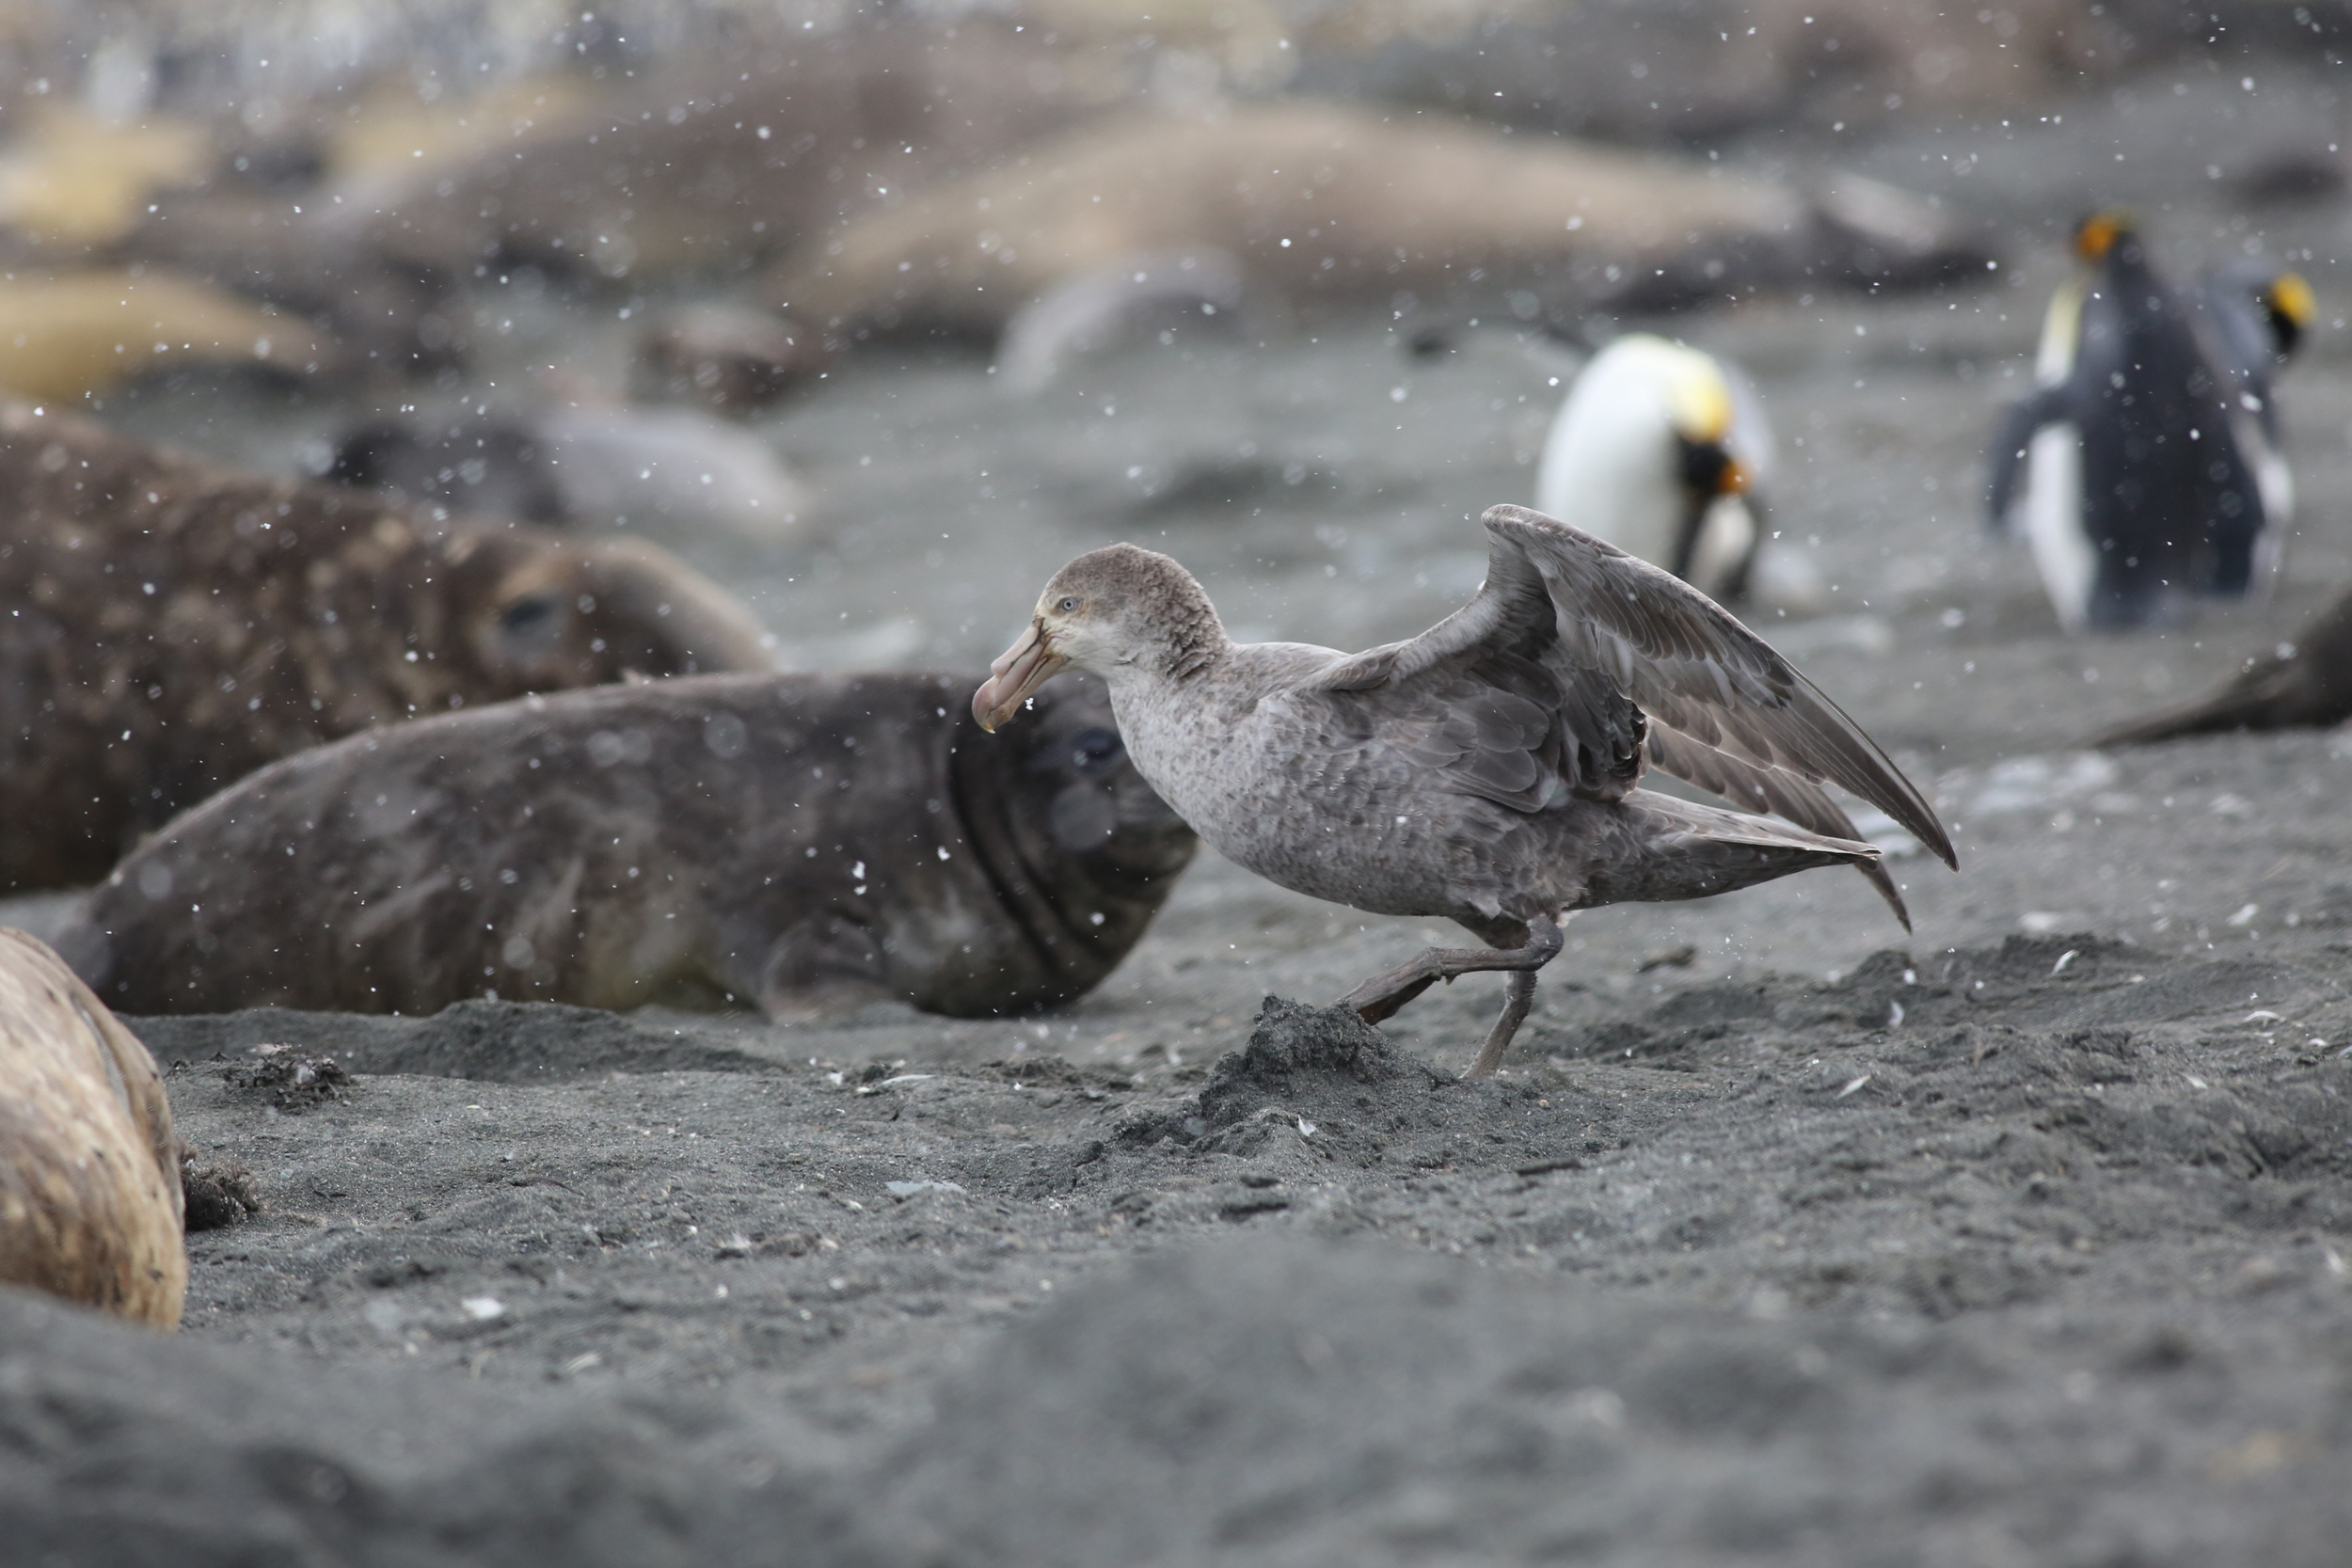 Southern giant petrels also arrived to join the feast.